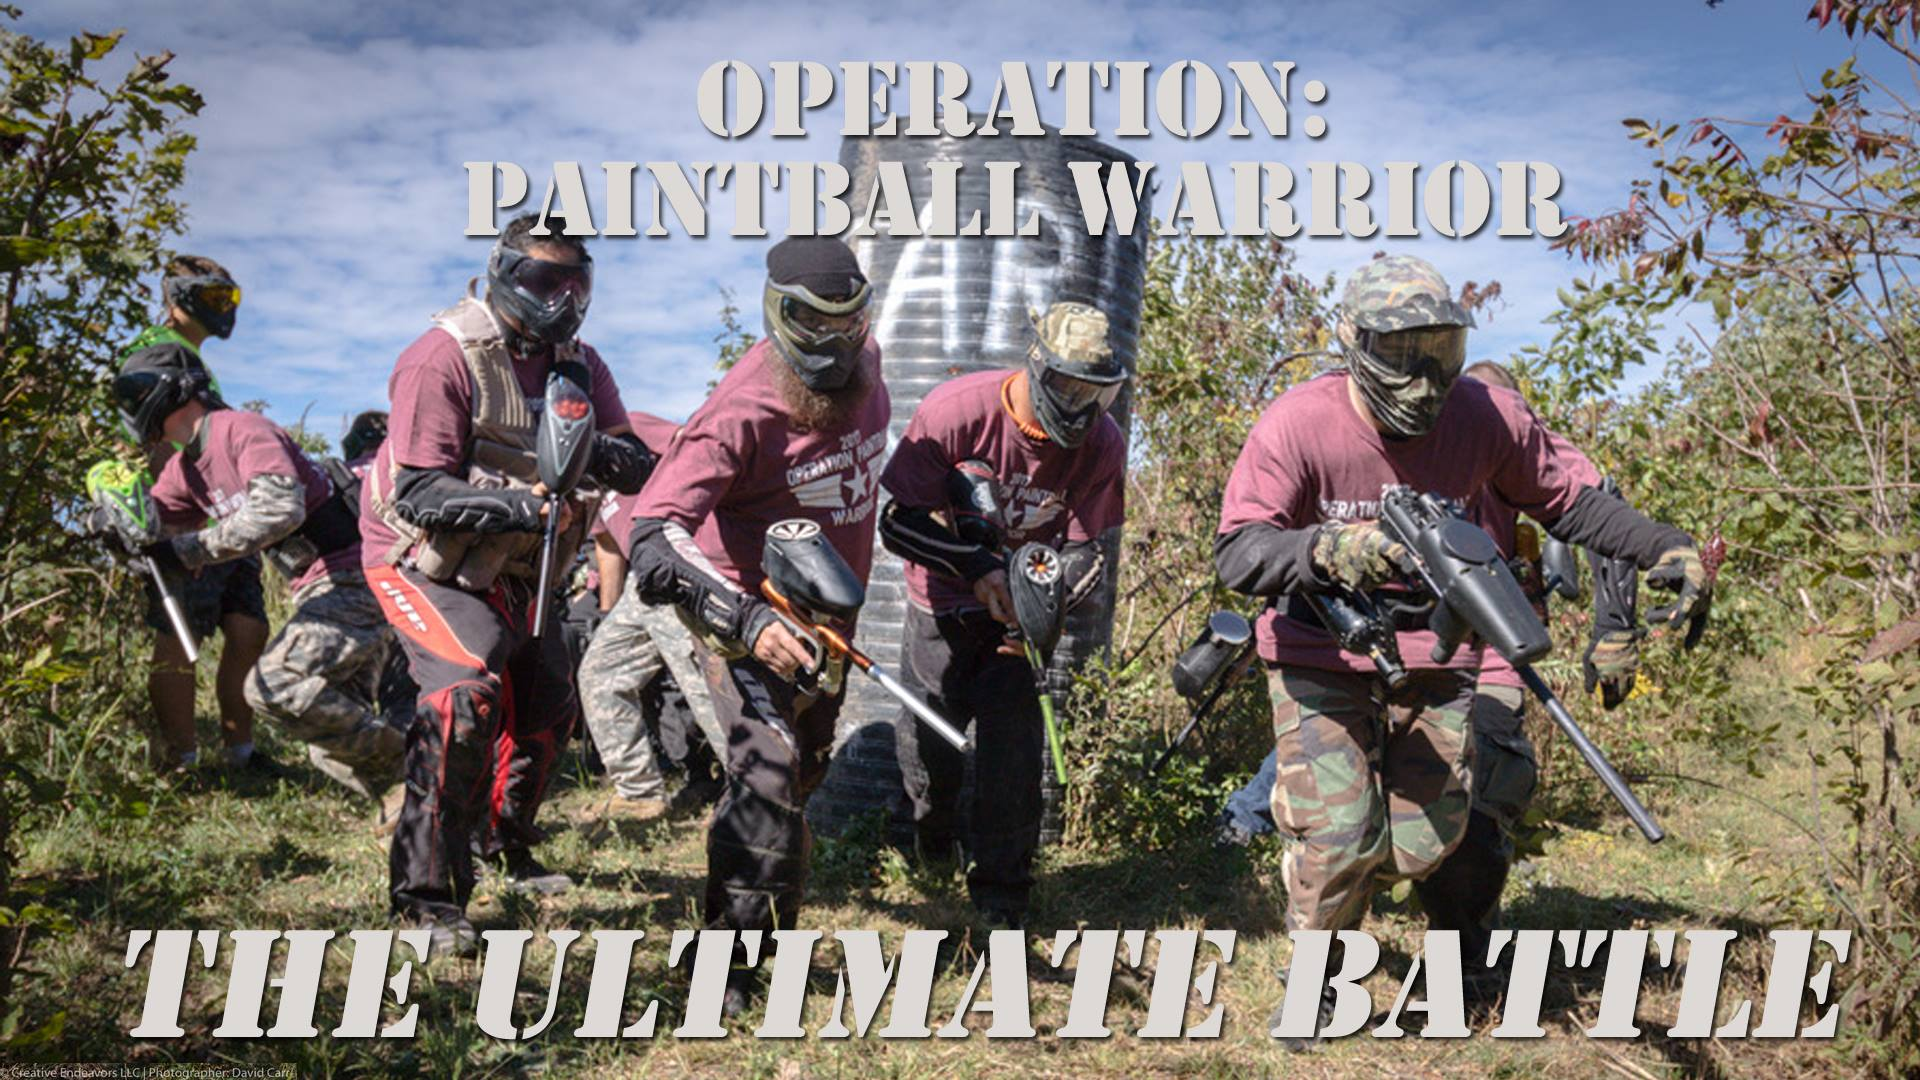 12th Annual Operation Paintball Warrior